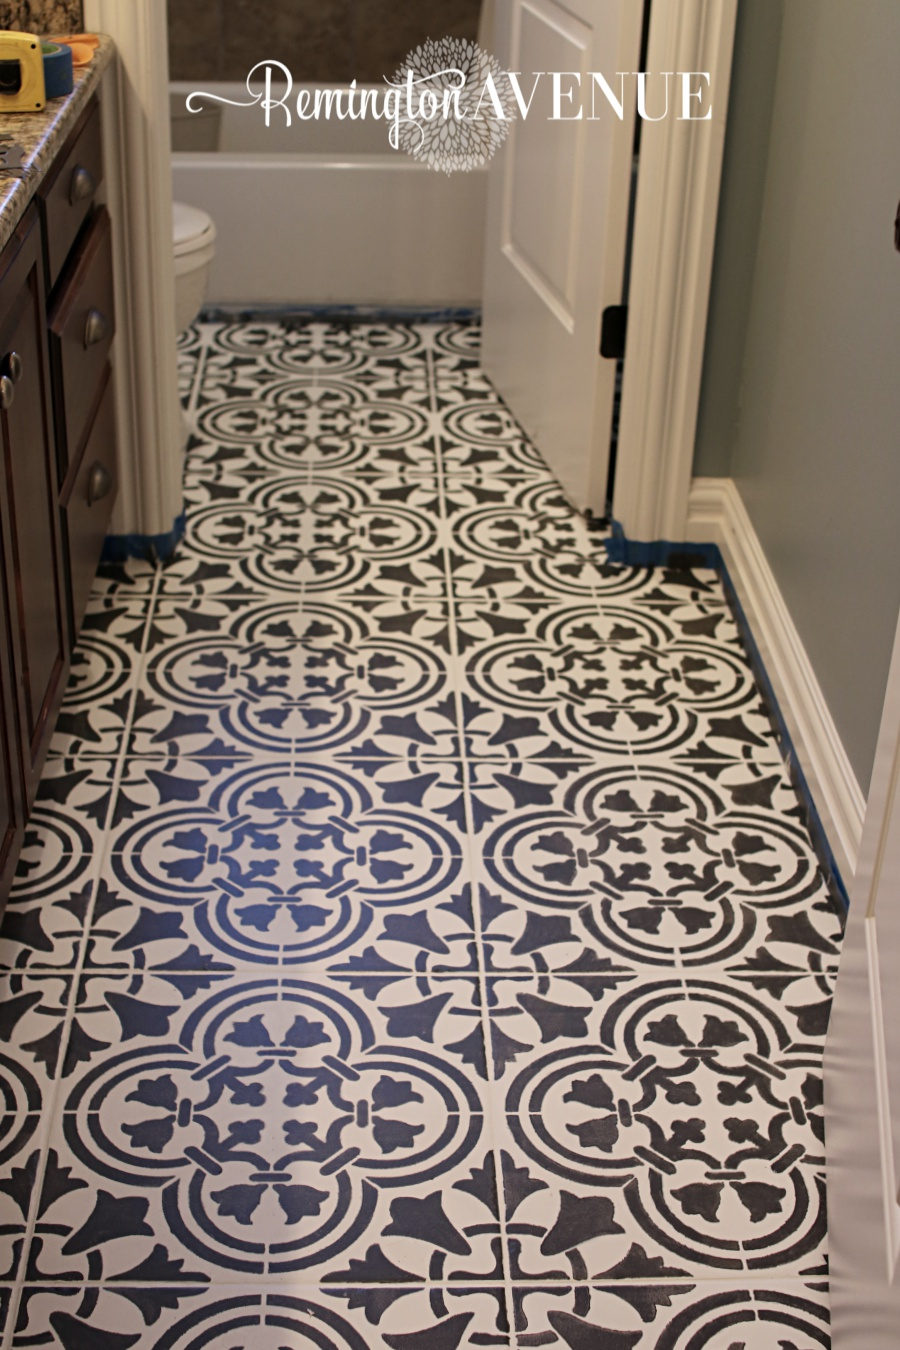 How to paint stencil tile remington avenue for Painting over vinyl floor